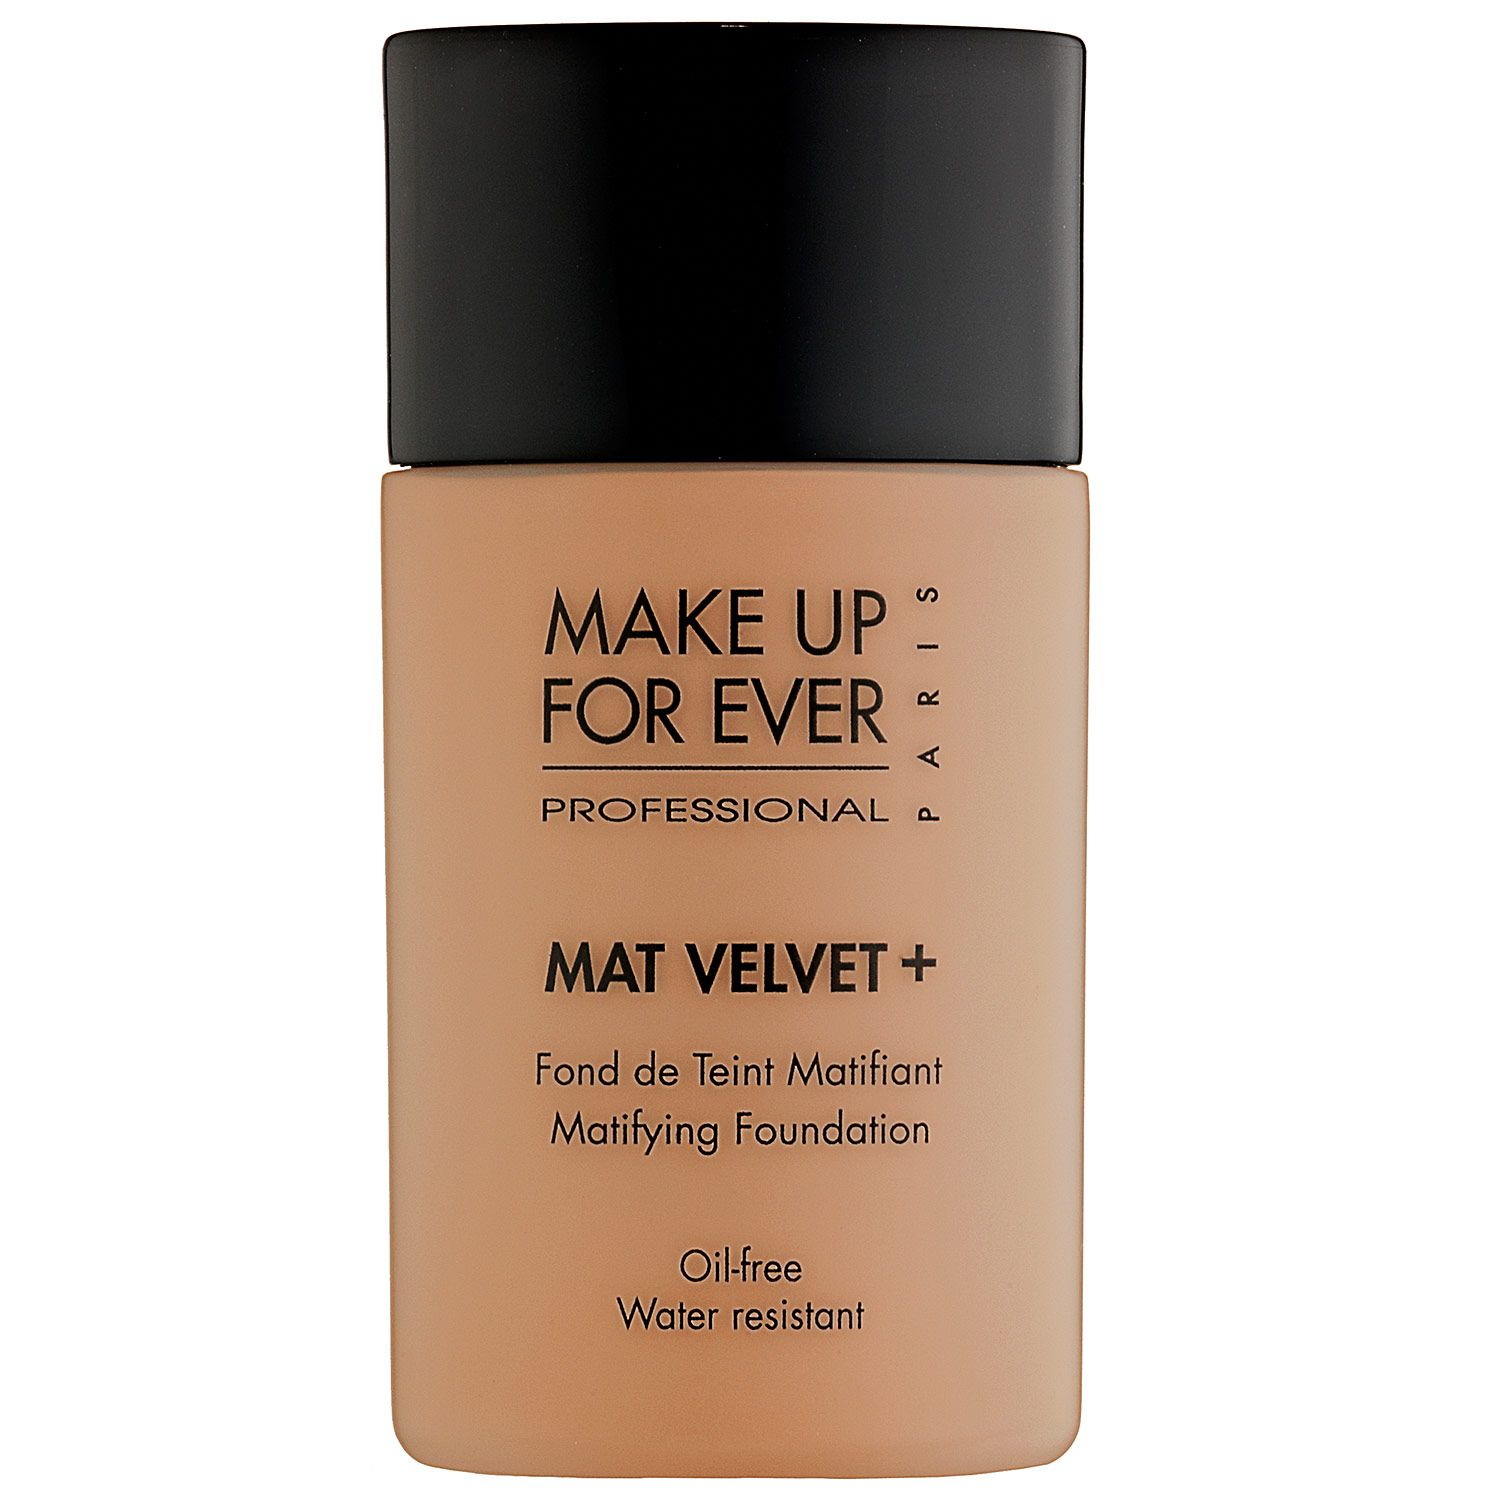 MAKE UP FOR EVER Mat Velvet + Matifying Foundation makeup